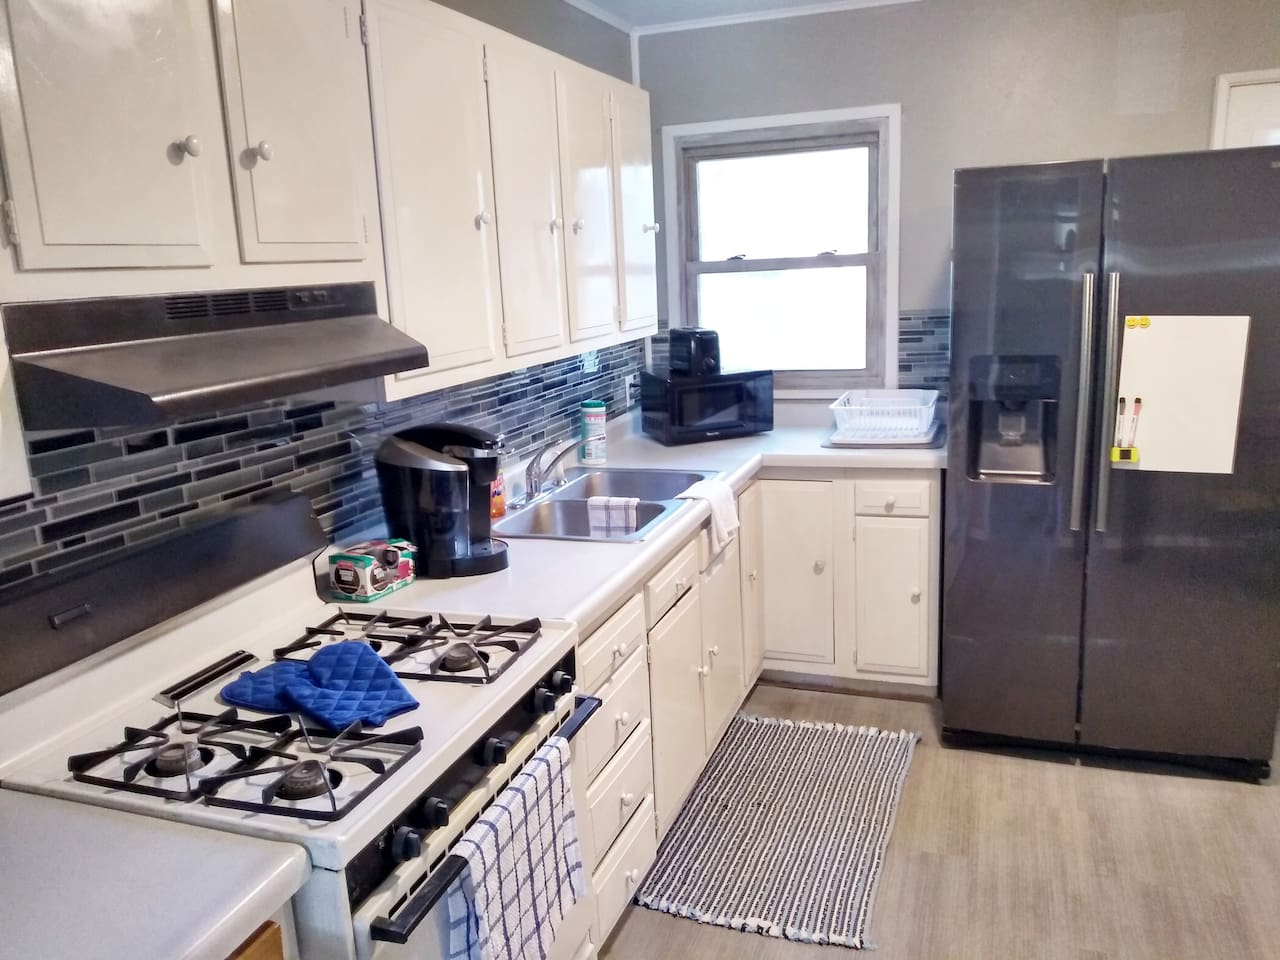 Kitchen featuring Glass Backsplash Keurig, Microwave, Gas Stove, Toaster